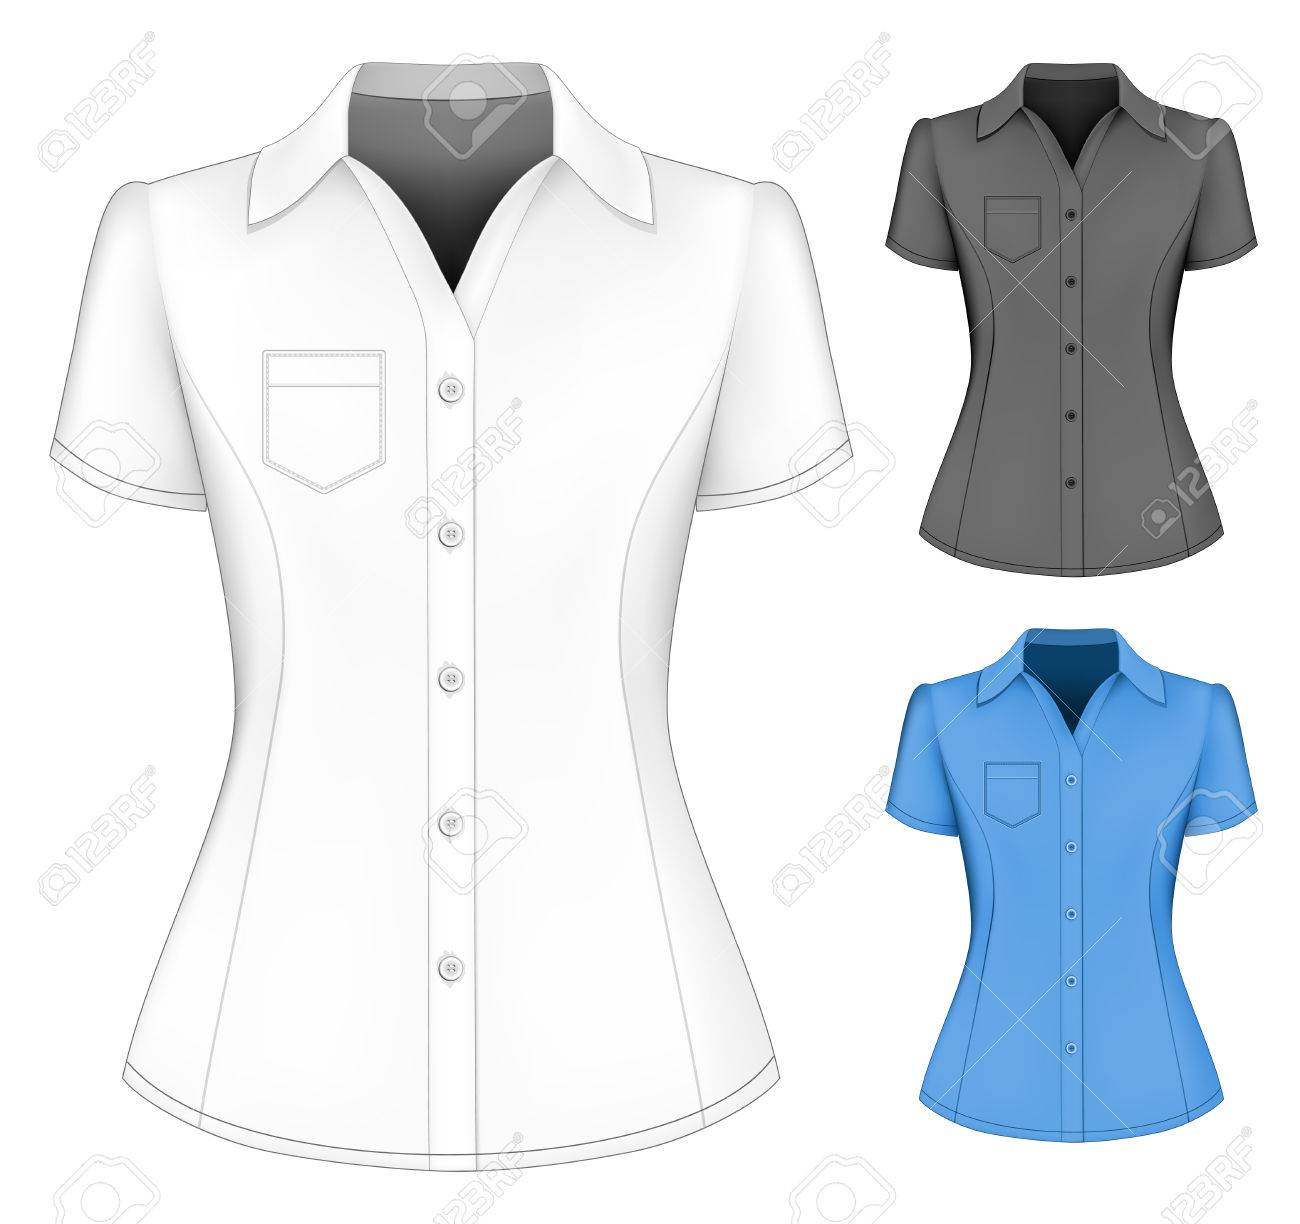 83ee657018ac2a Formal Short Sleeved Blouses For Lady. Royalty Free Cliparts ...